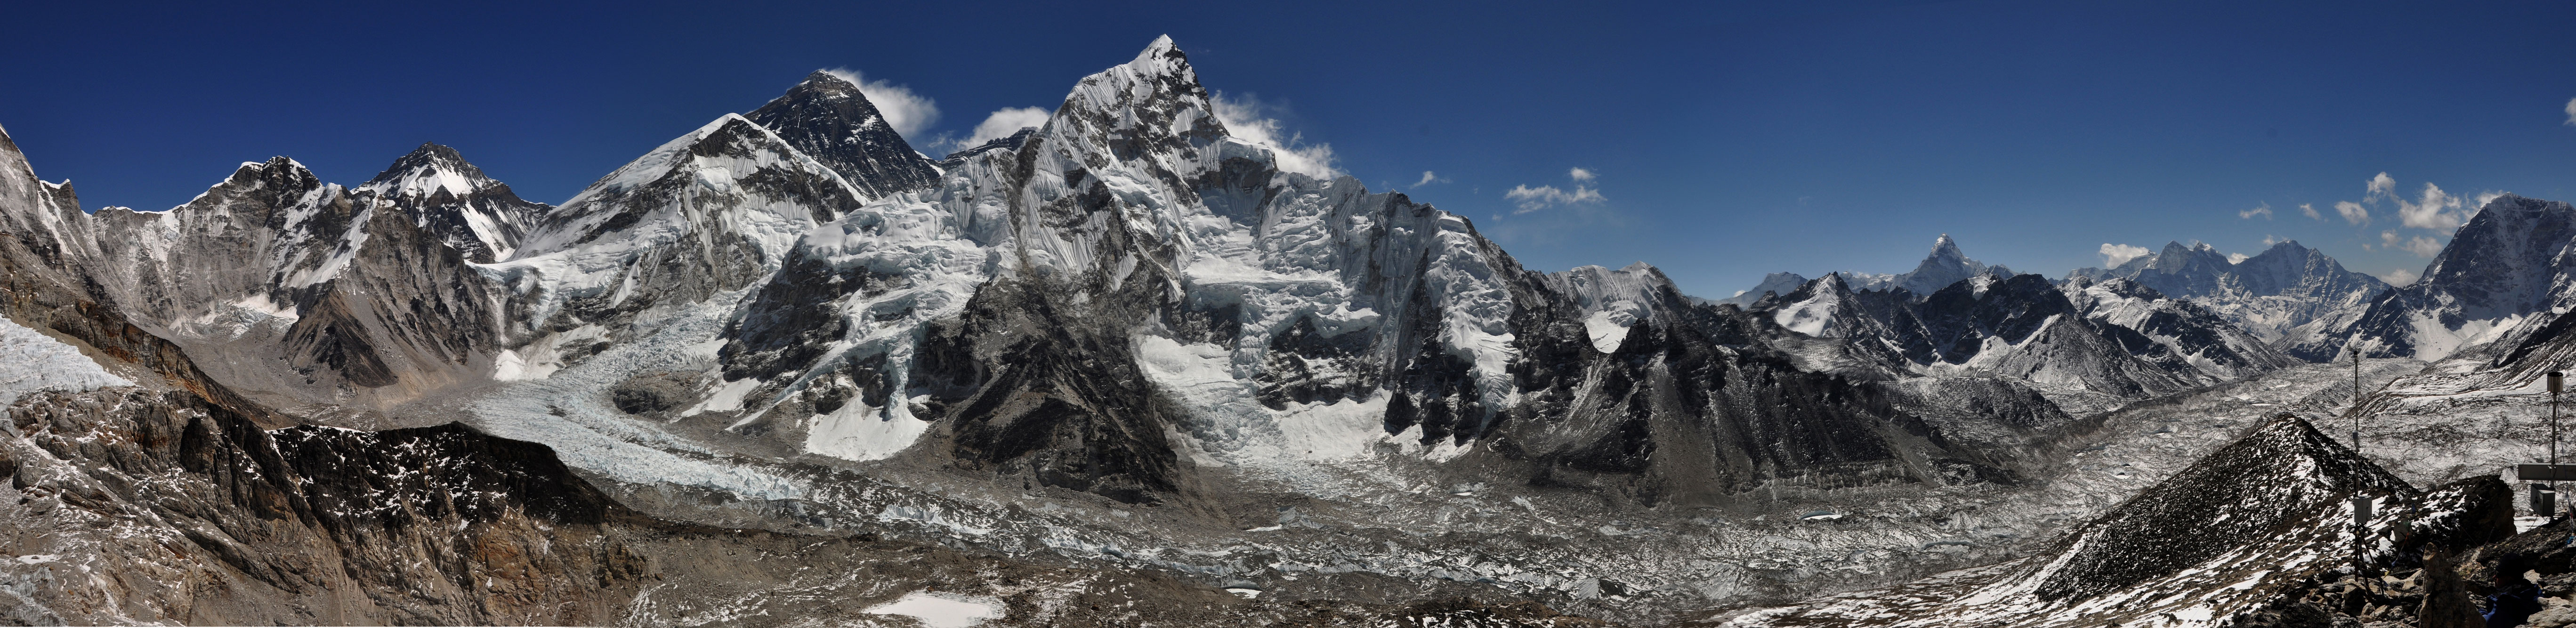 The ultimate guide to filming in the Himalayas » The Location Guide